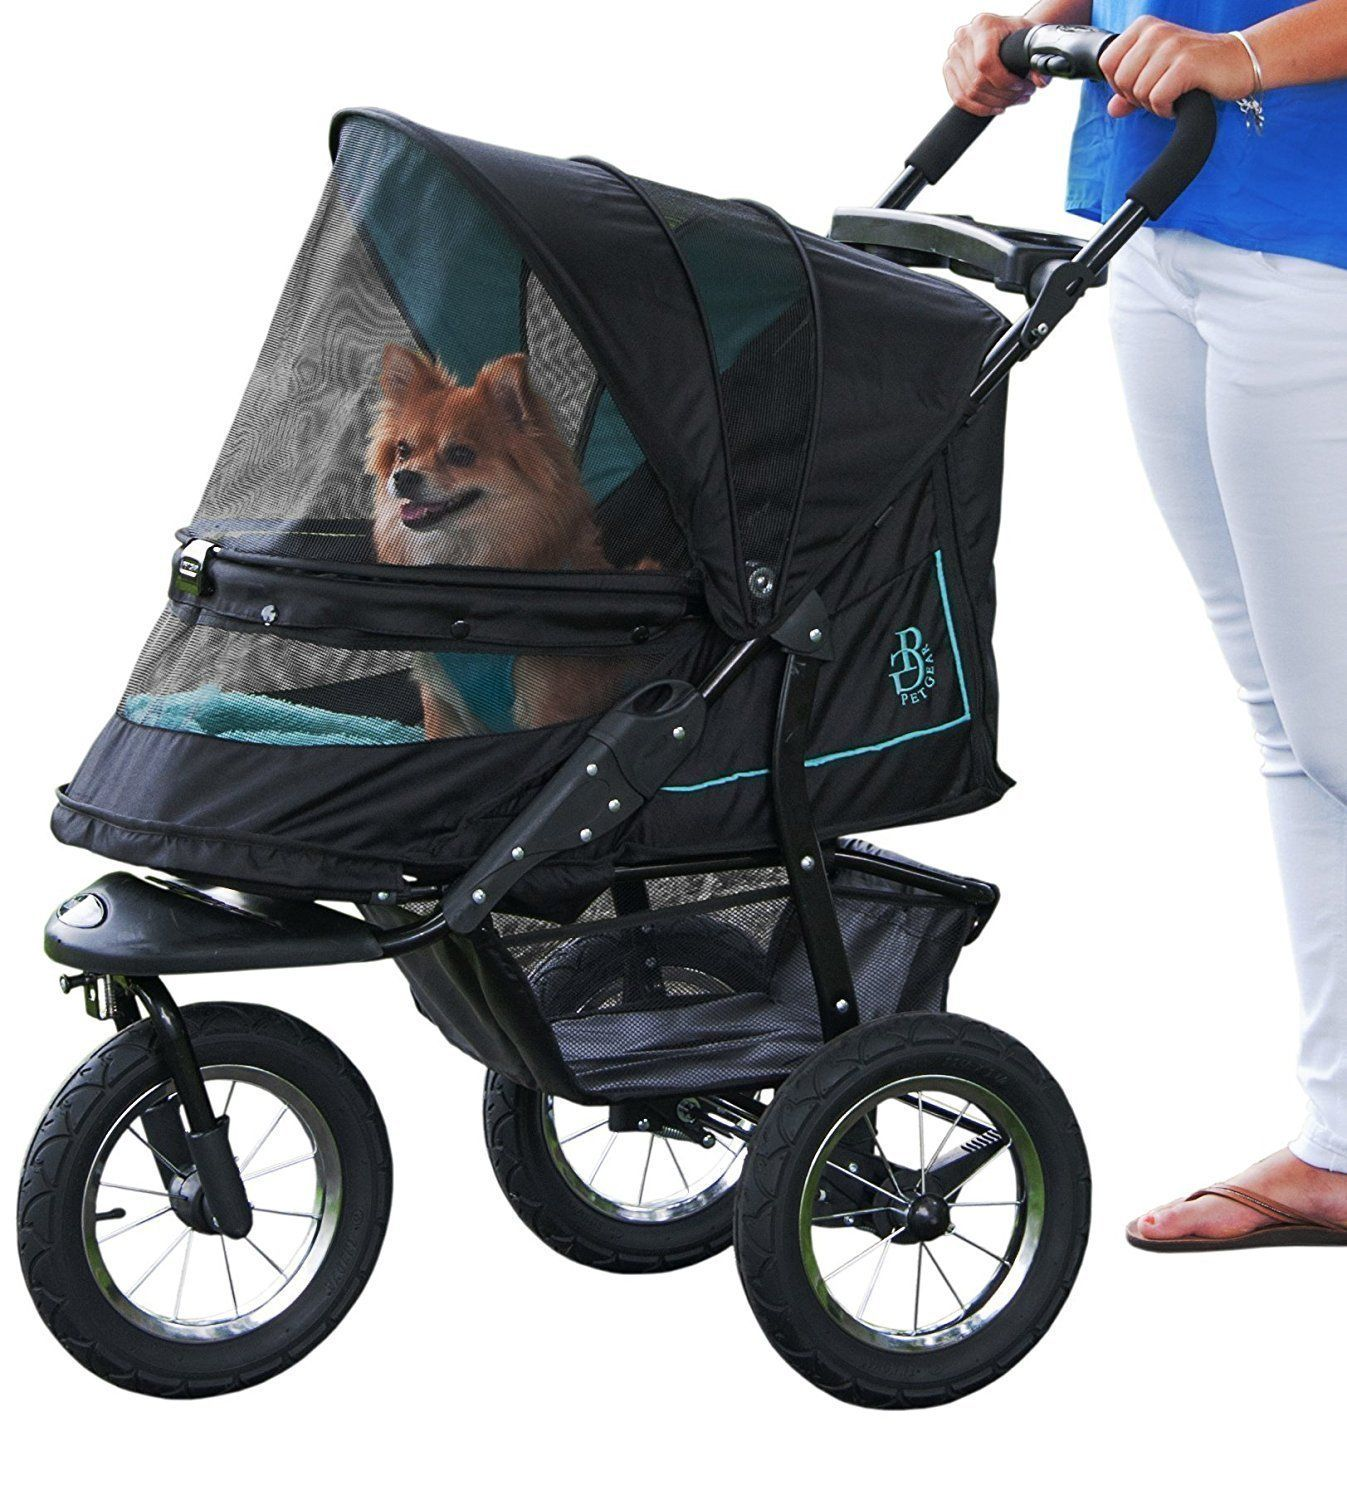 Rose NV NOZIP Pet Stroller For Pets Up To 70 lbs